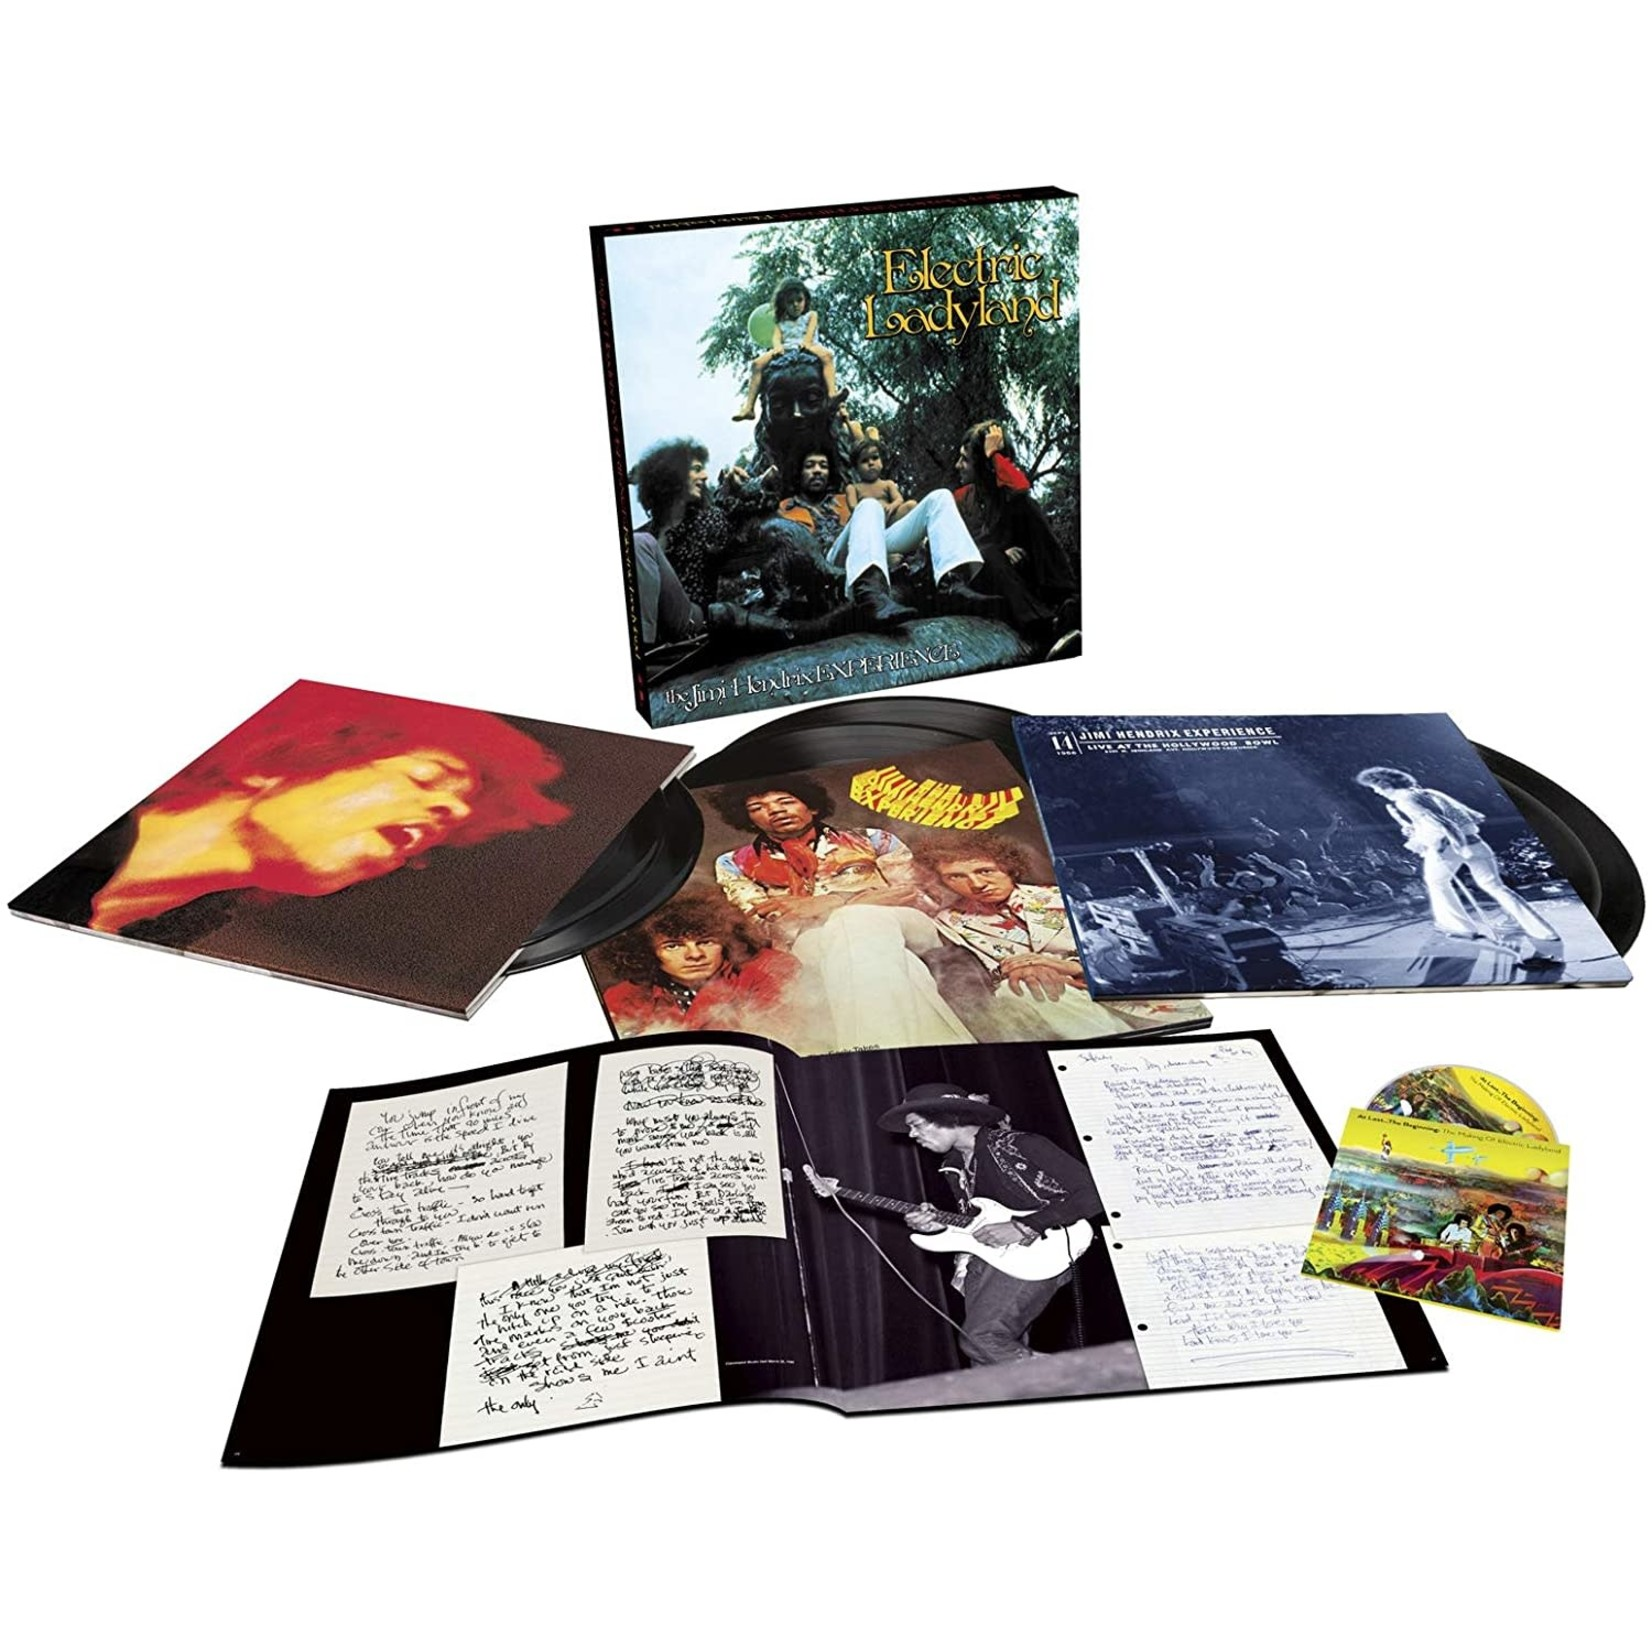 JIMI HENDRIX ELECTRIC LADYLAND - 50TH ANNIVERSARY DELUXE EDITION